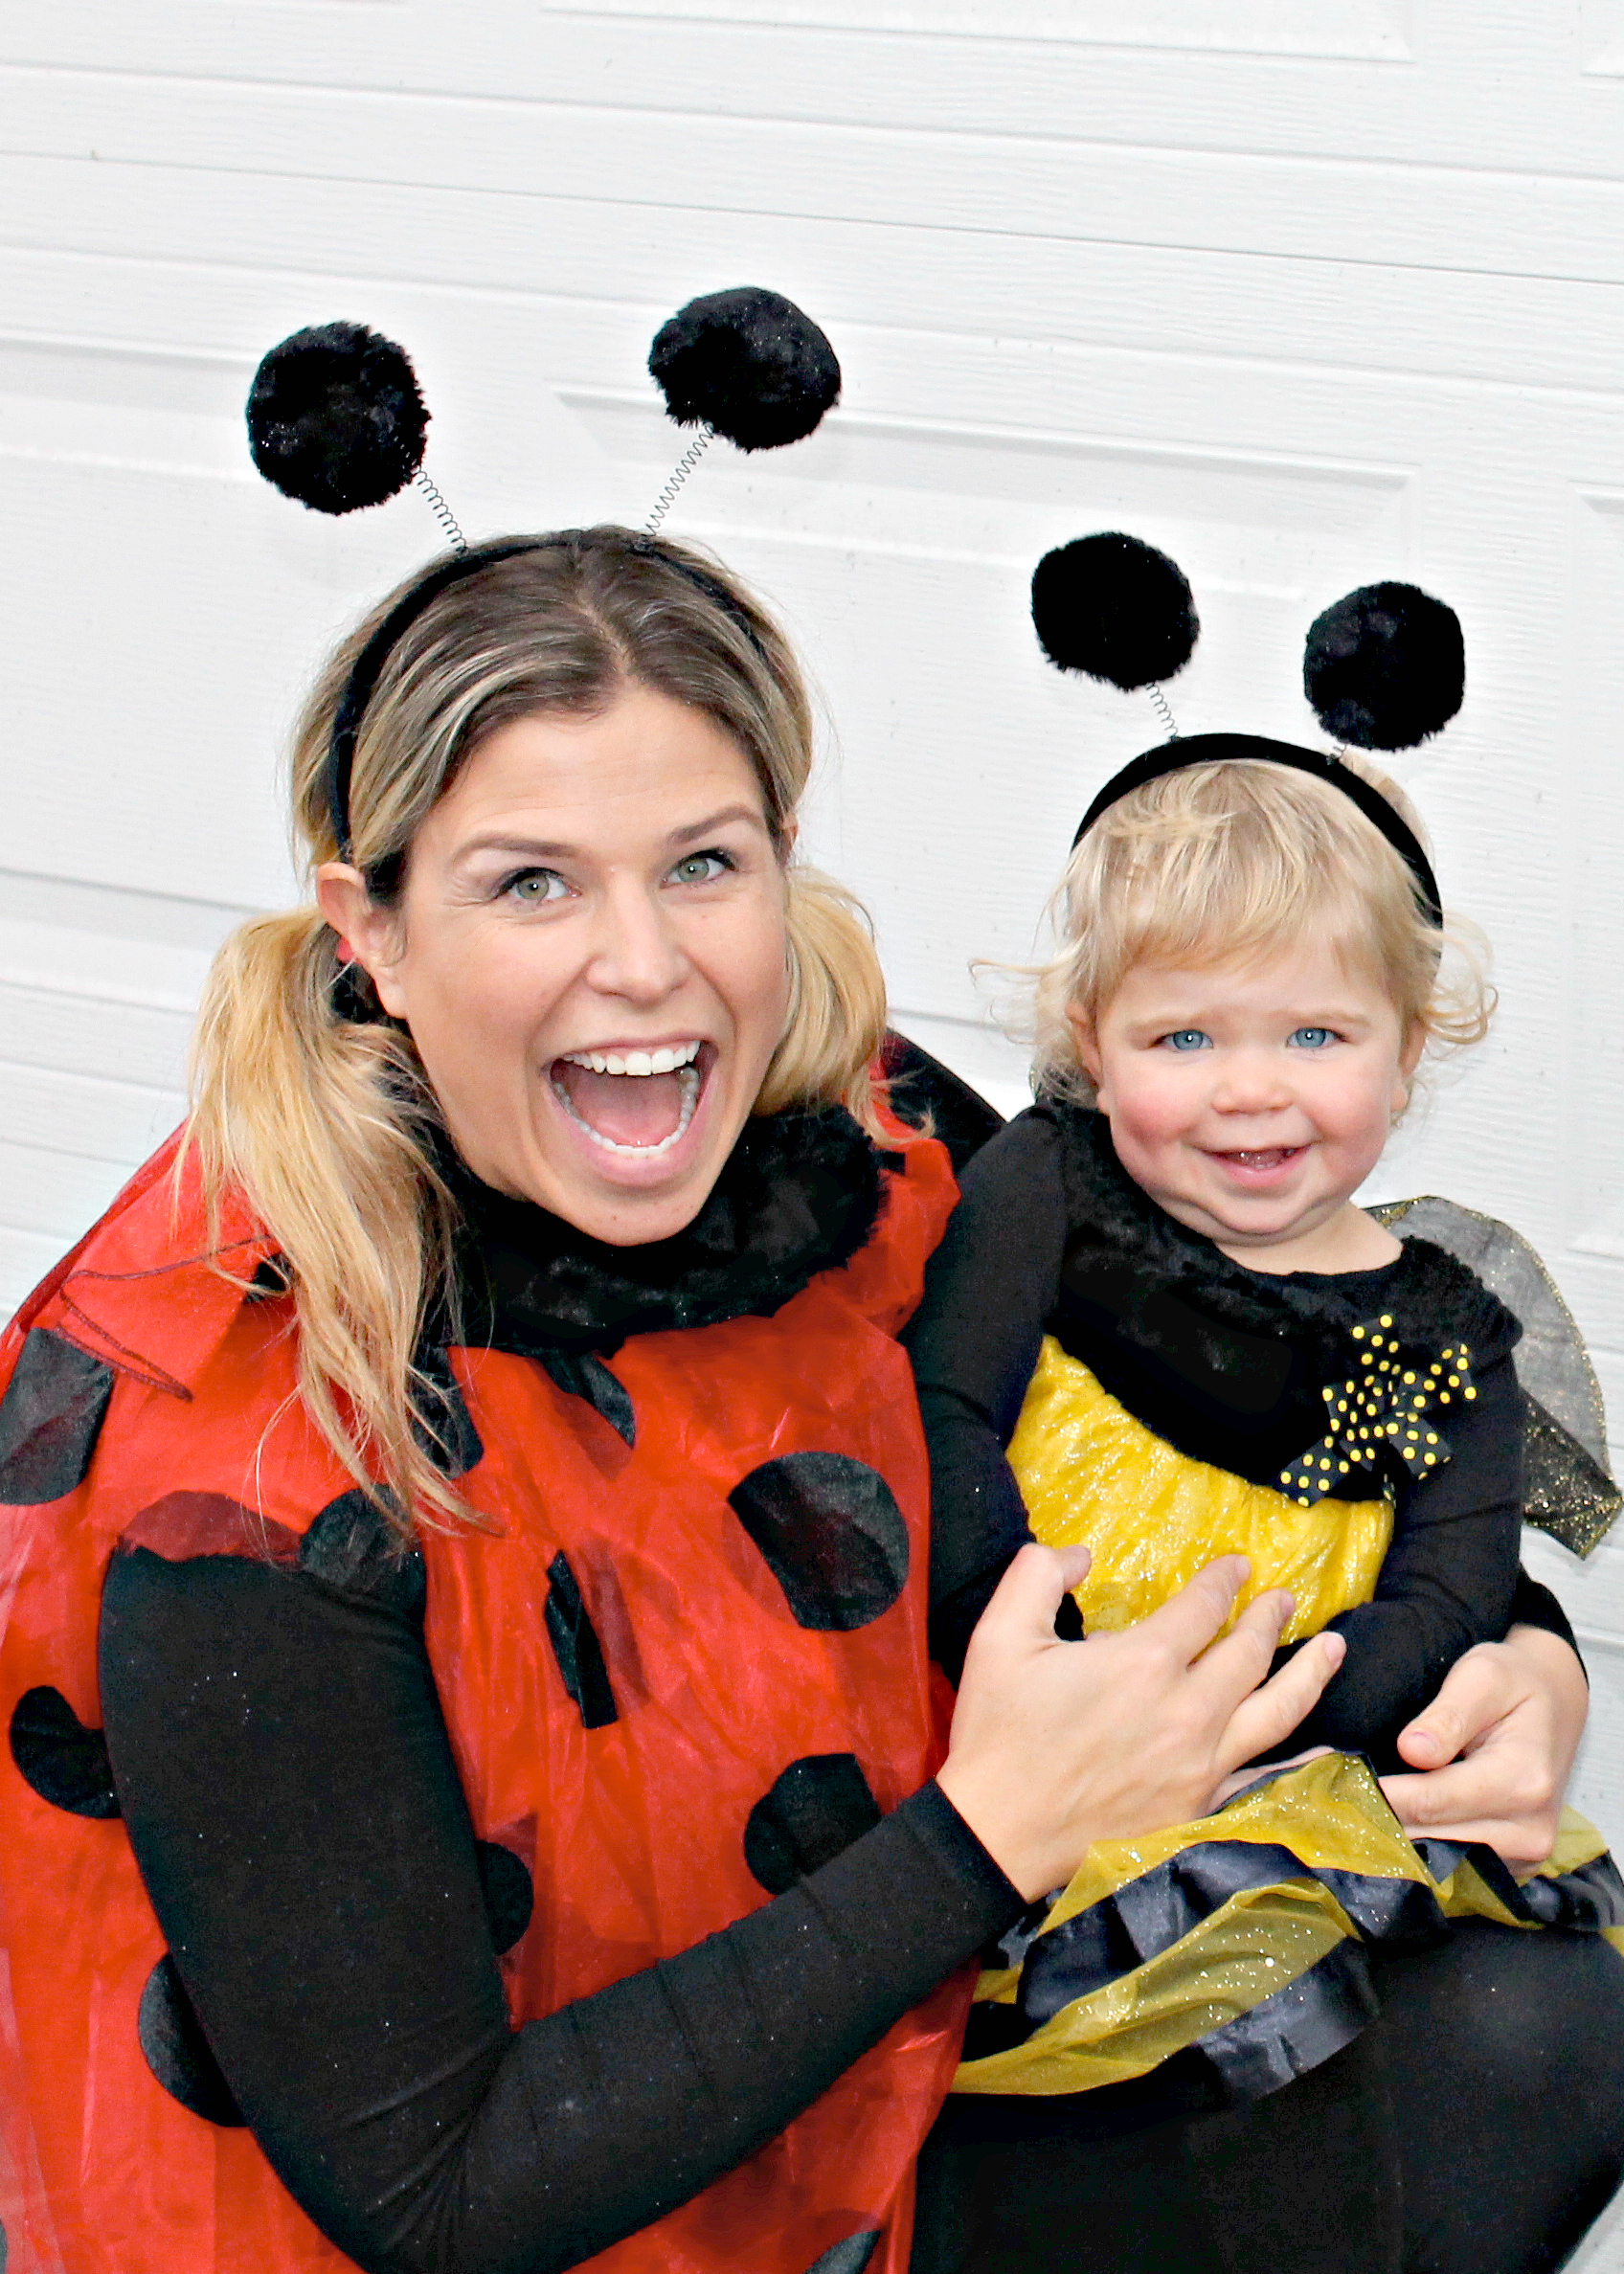 Family Halloween Costume Ideas | Group Costume Ideas | Kids Halloween Costumes | Ladybug Bee and Spider Costume